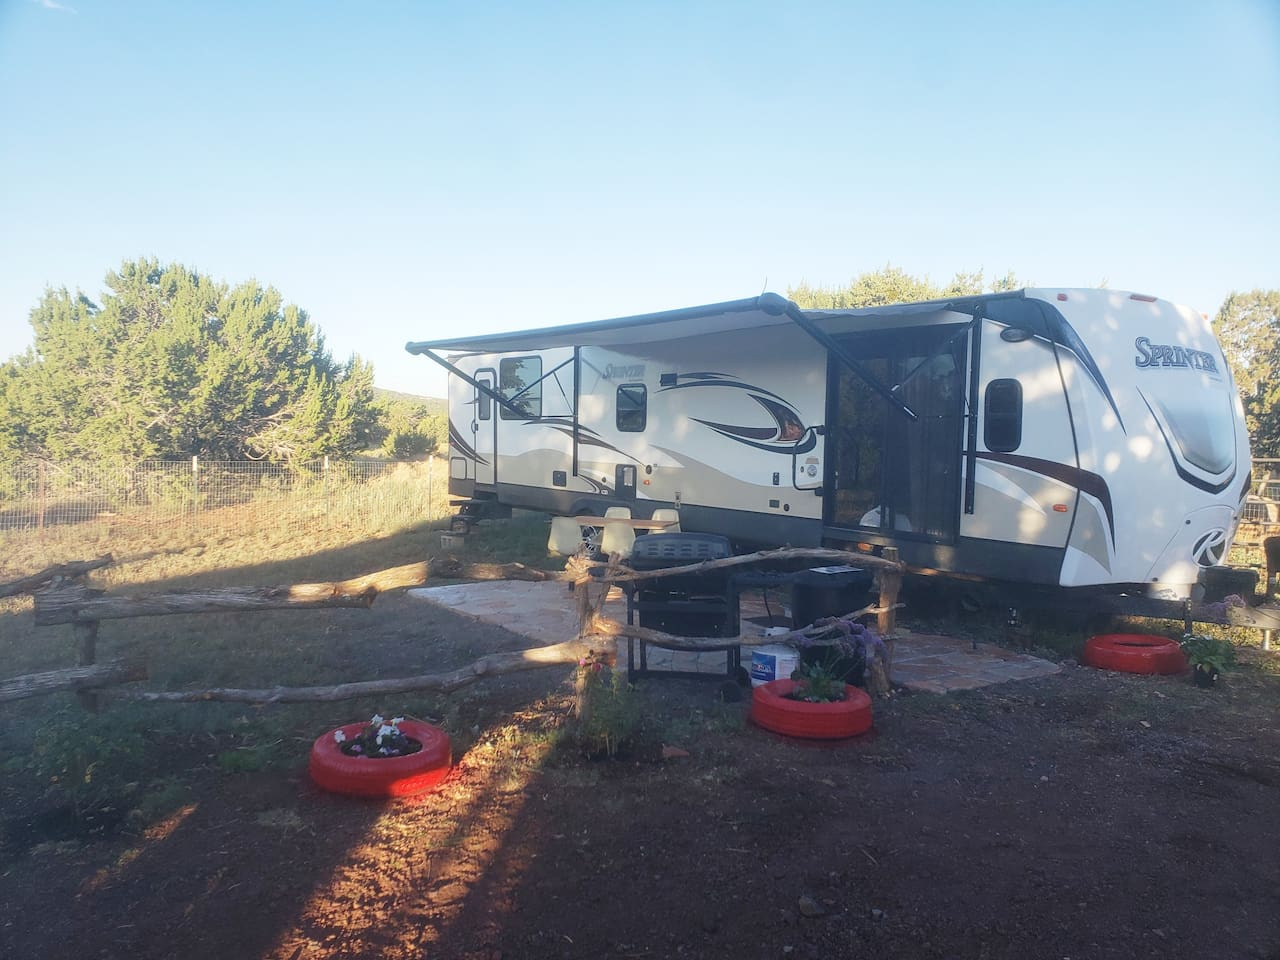 Camping never looked so good! Enjoy a private patio, grill and yard area.